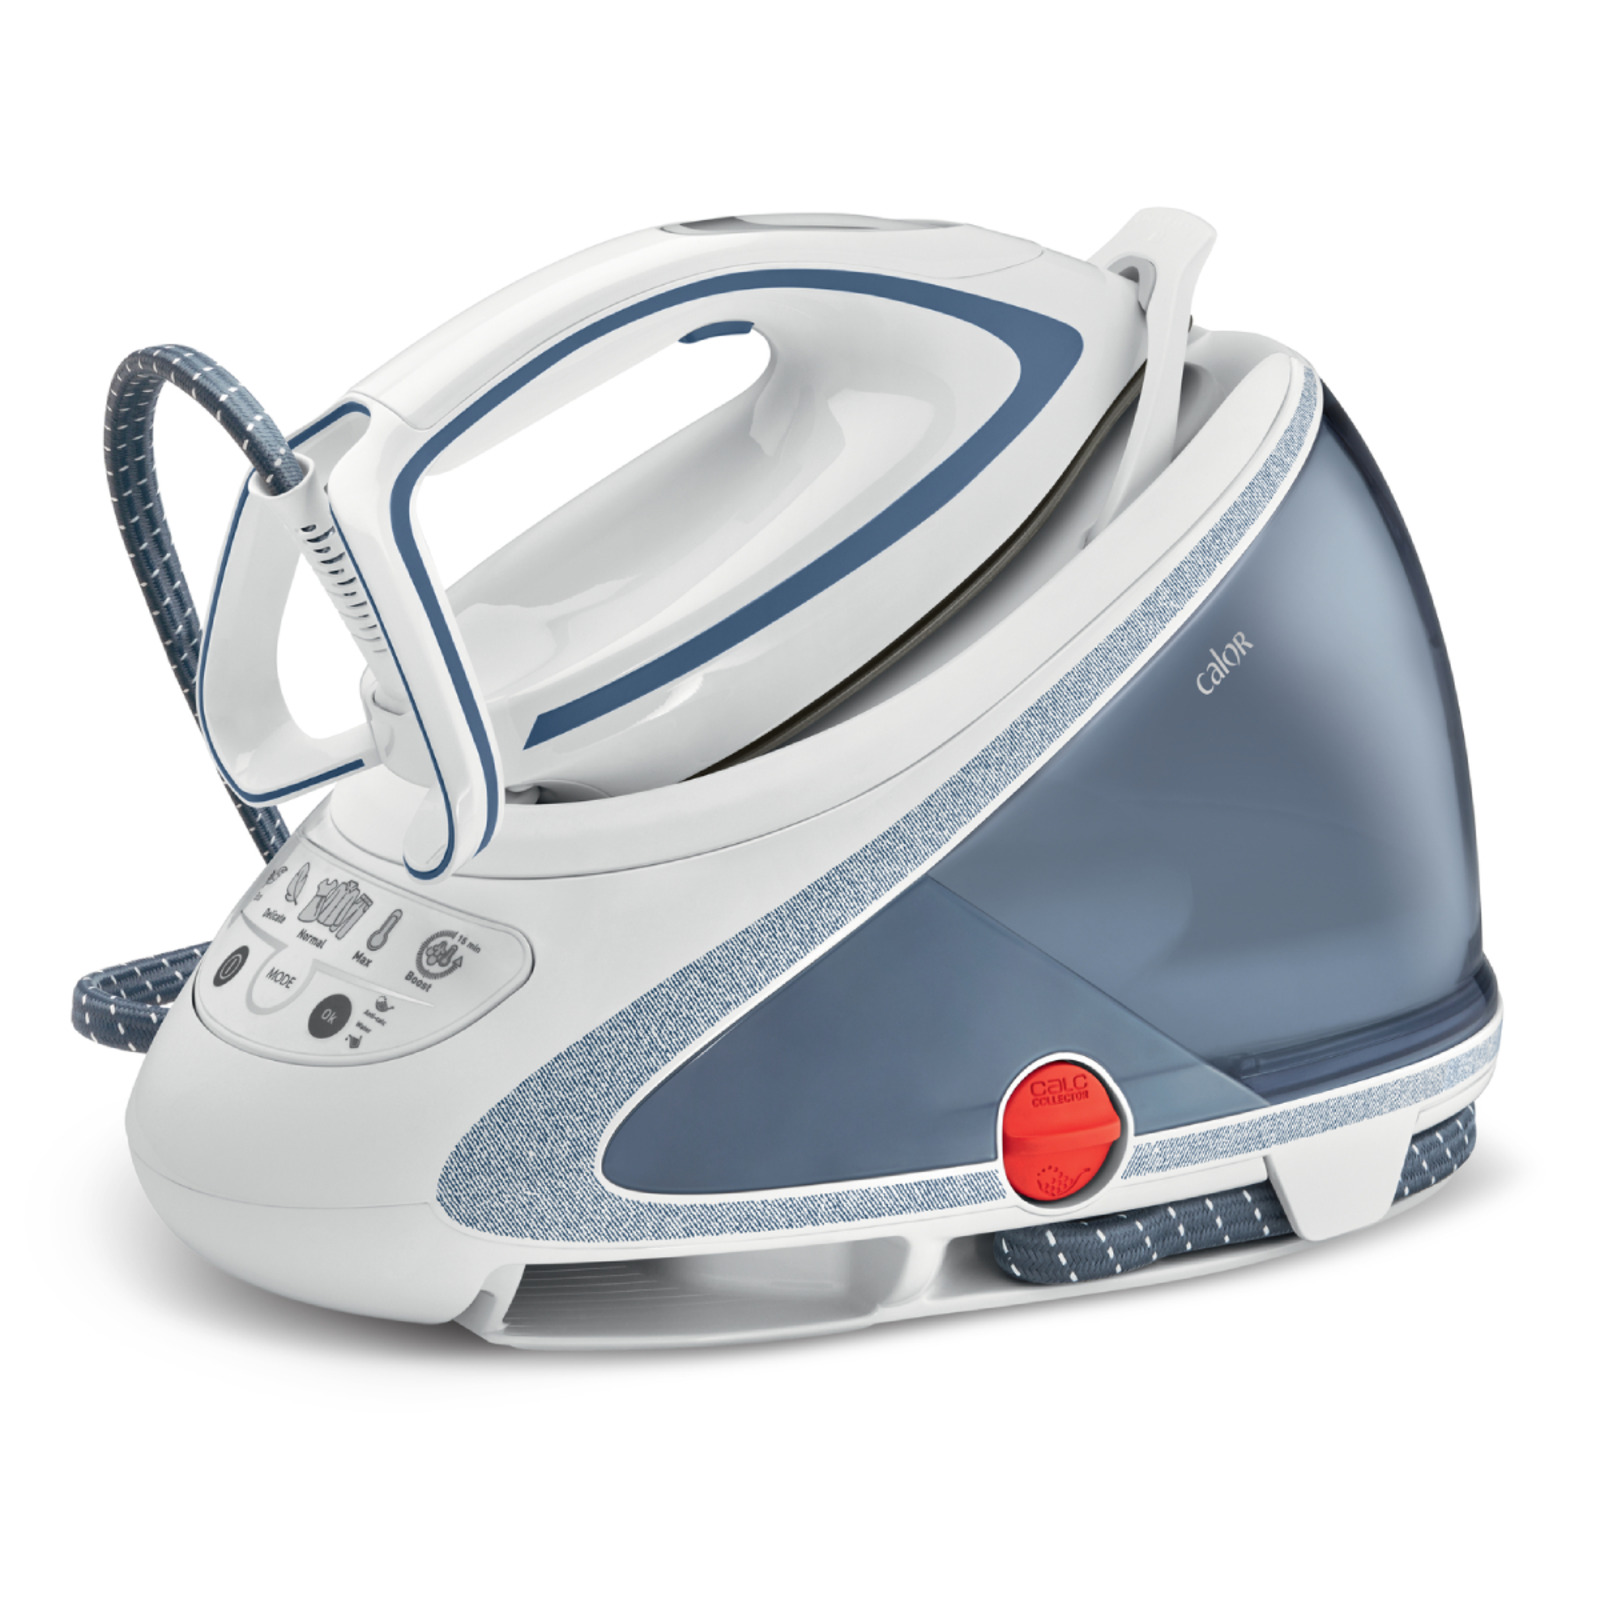 Tefal Steam Gen Pro Express Ultimate GV9563